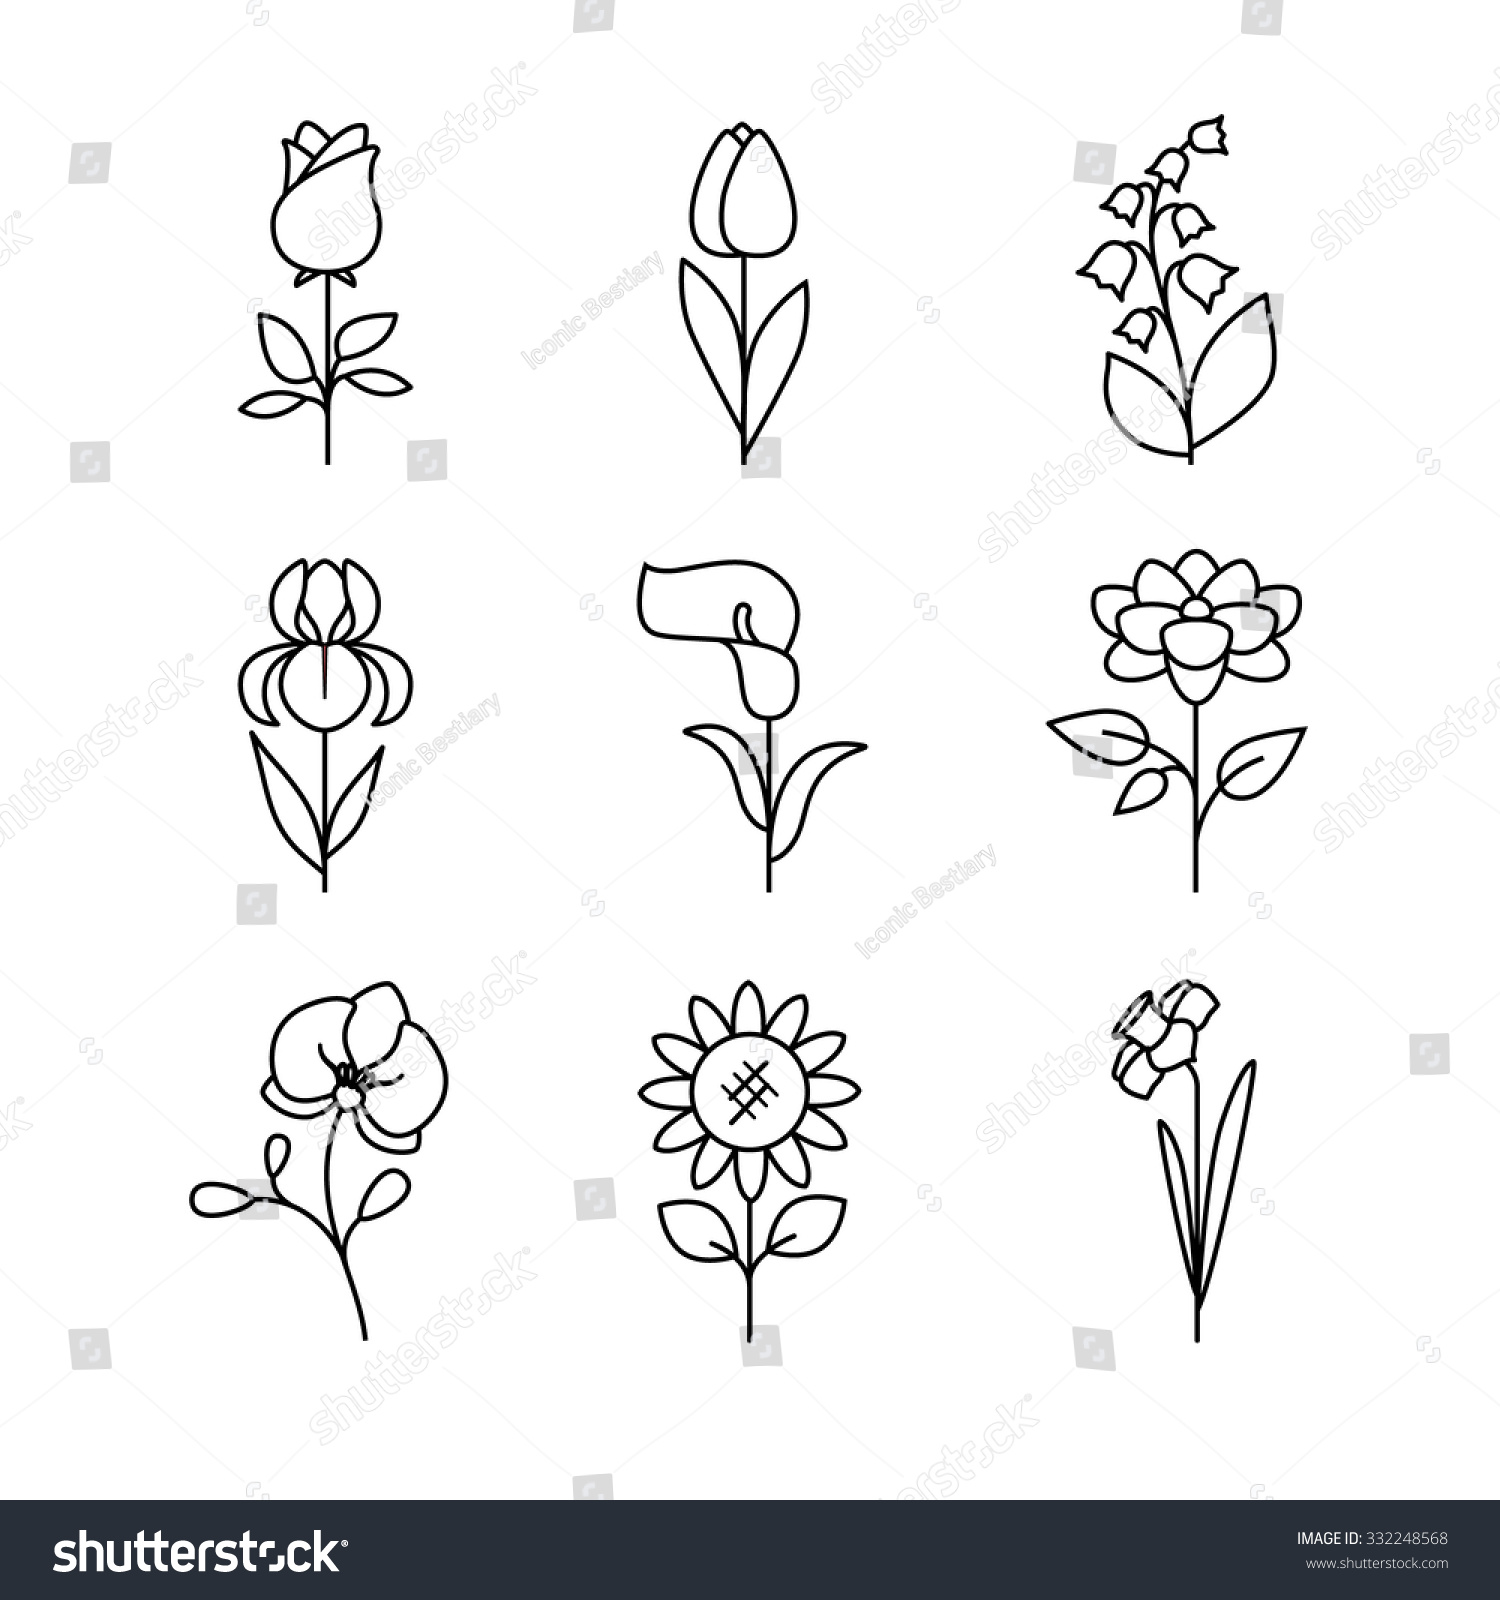 Wedding Flower Line Drawing : Popular wedding flowers blossoming thin line stock vector